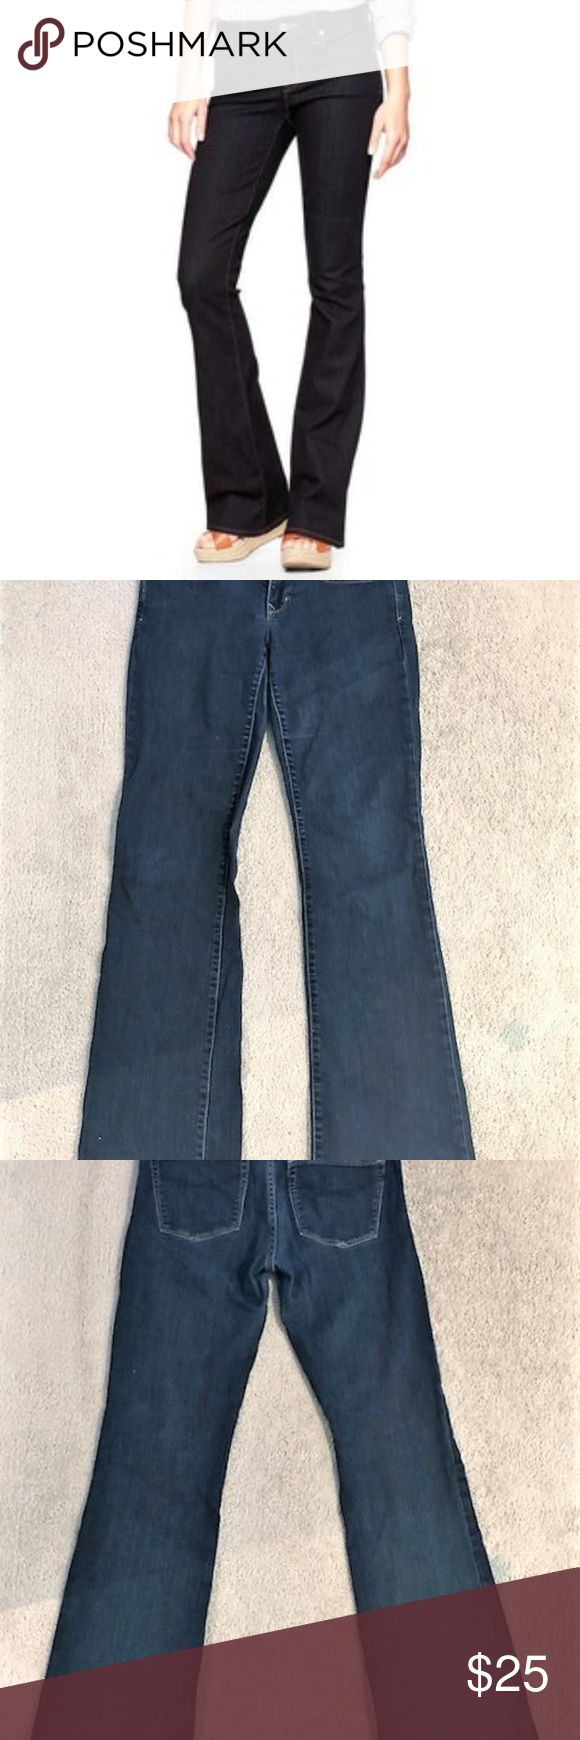 "Gap 1969 Curvy Jeans Women's Size 29/8L Dark Wash Gap 1969 Curvy Jeans Women's Size 28/6r Dark Wash.  Slight wear on the back of the bottom of pant legs. A 1"" rip in the bottom left leg above the bottom hem. See photo. Very good condition otherwise. The waist measures 7.25"" from the top front to the crotch seam. American Eagle Outfitters Jeans Boot Cut"